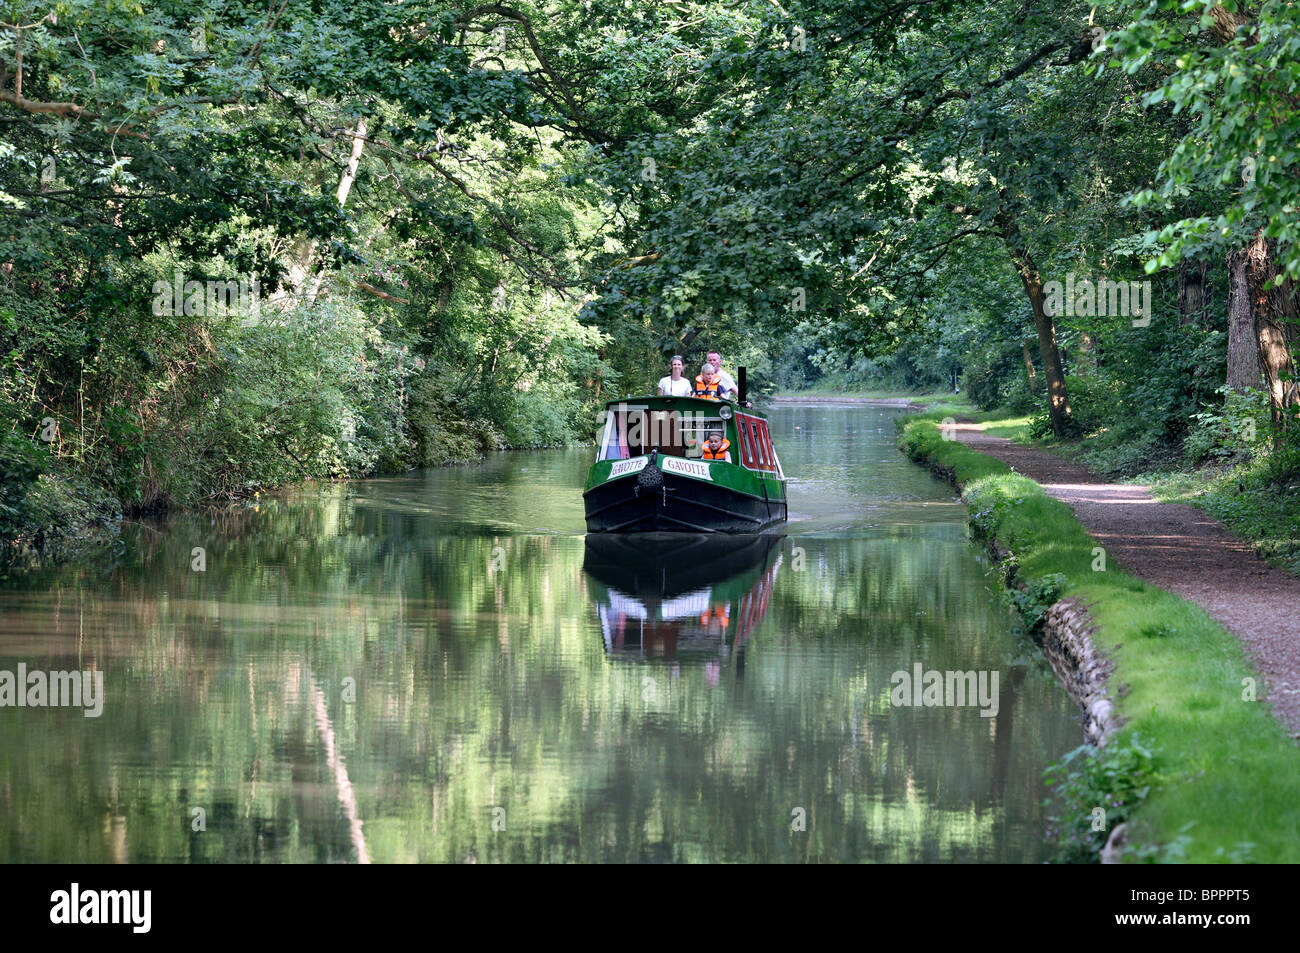 A narrowboat on the Oxford Canal, near Brinklow, Warwickshire. - Stock Image